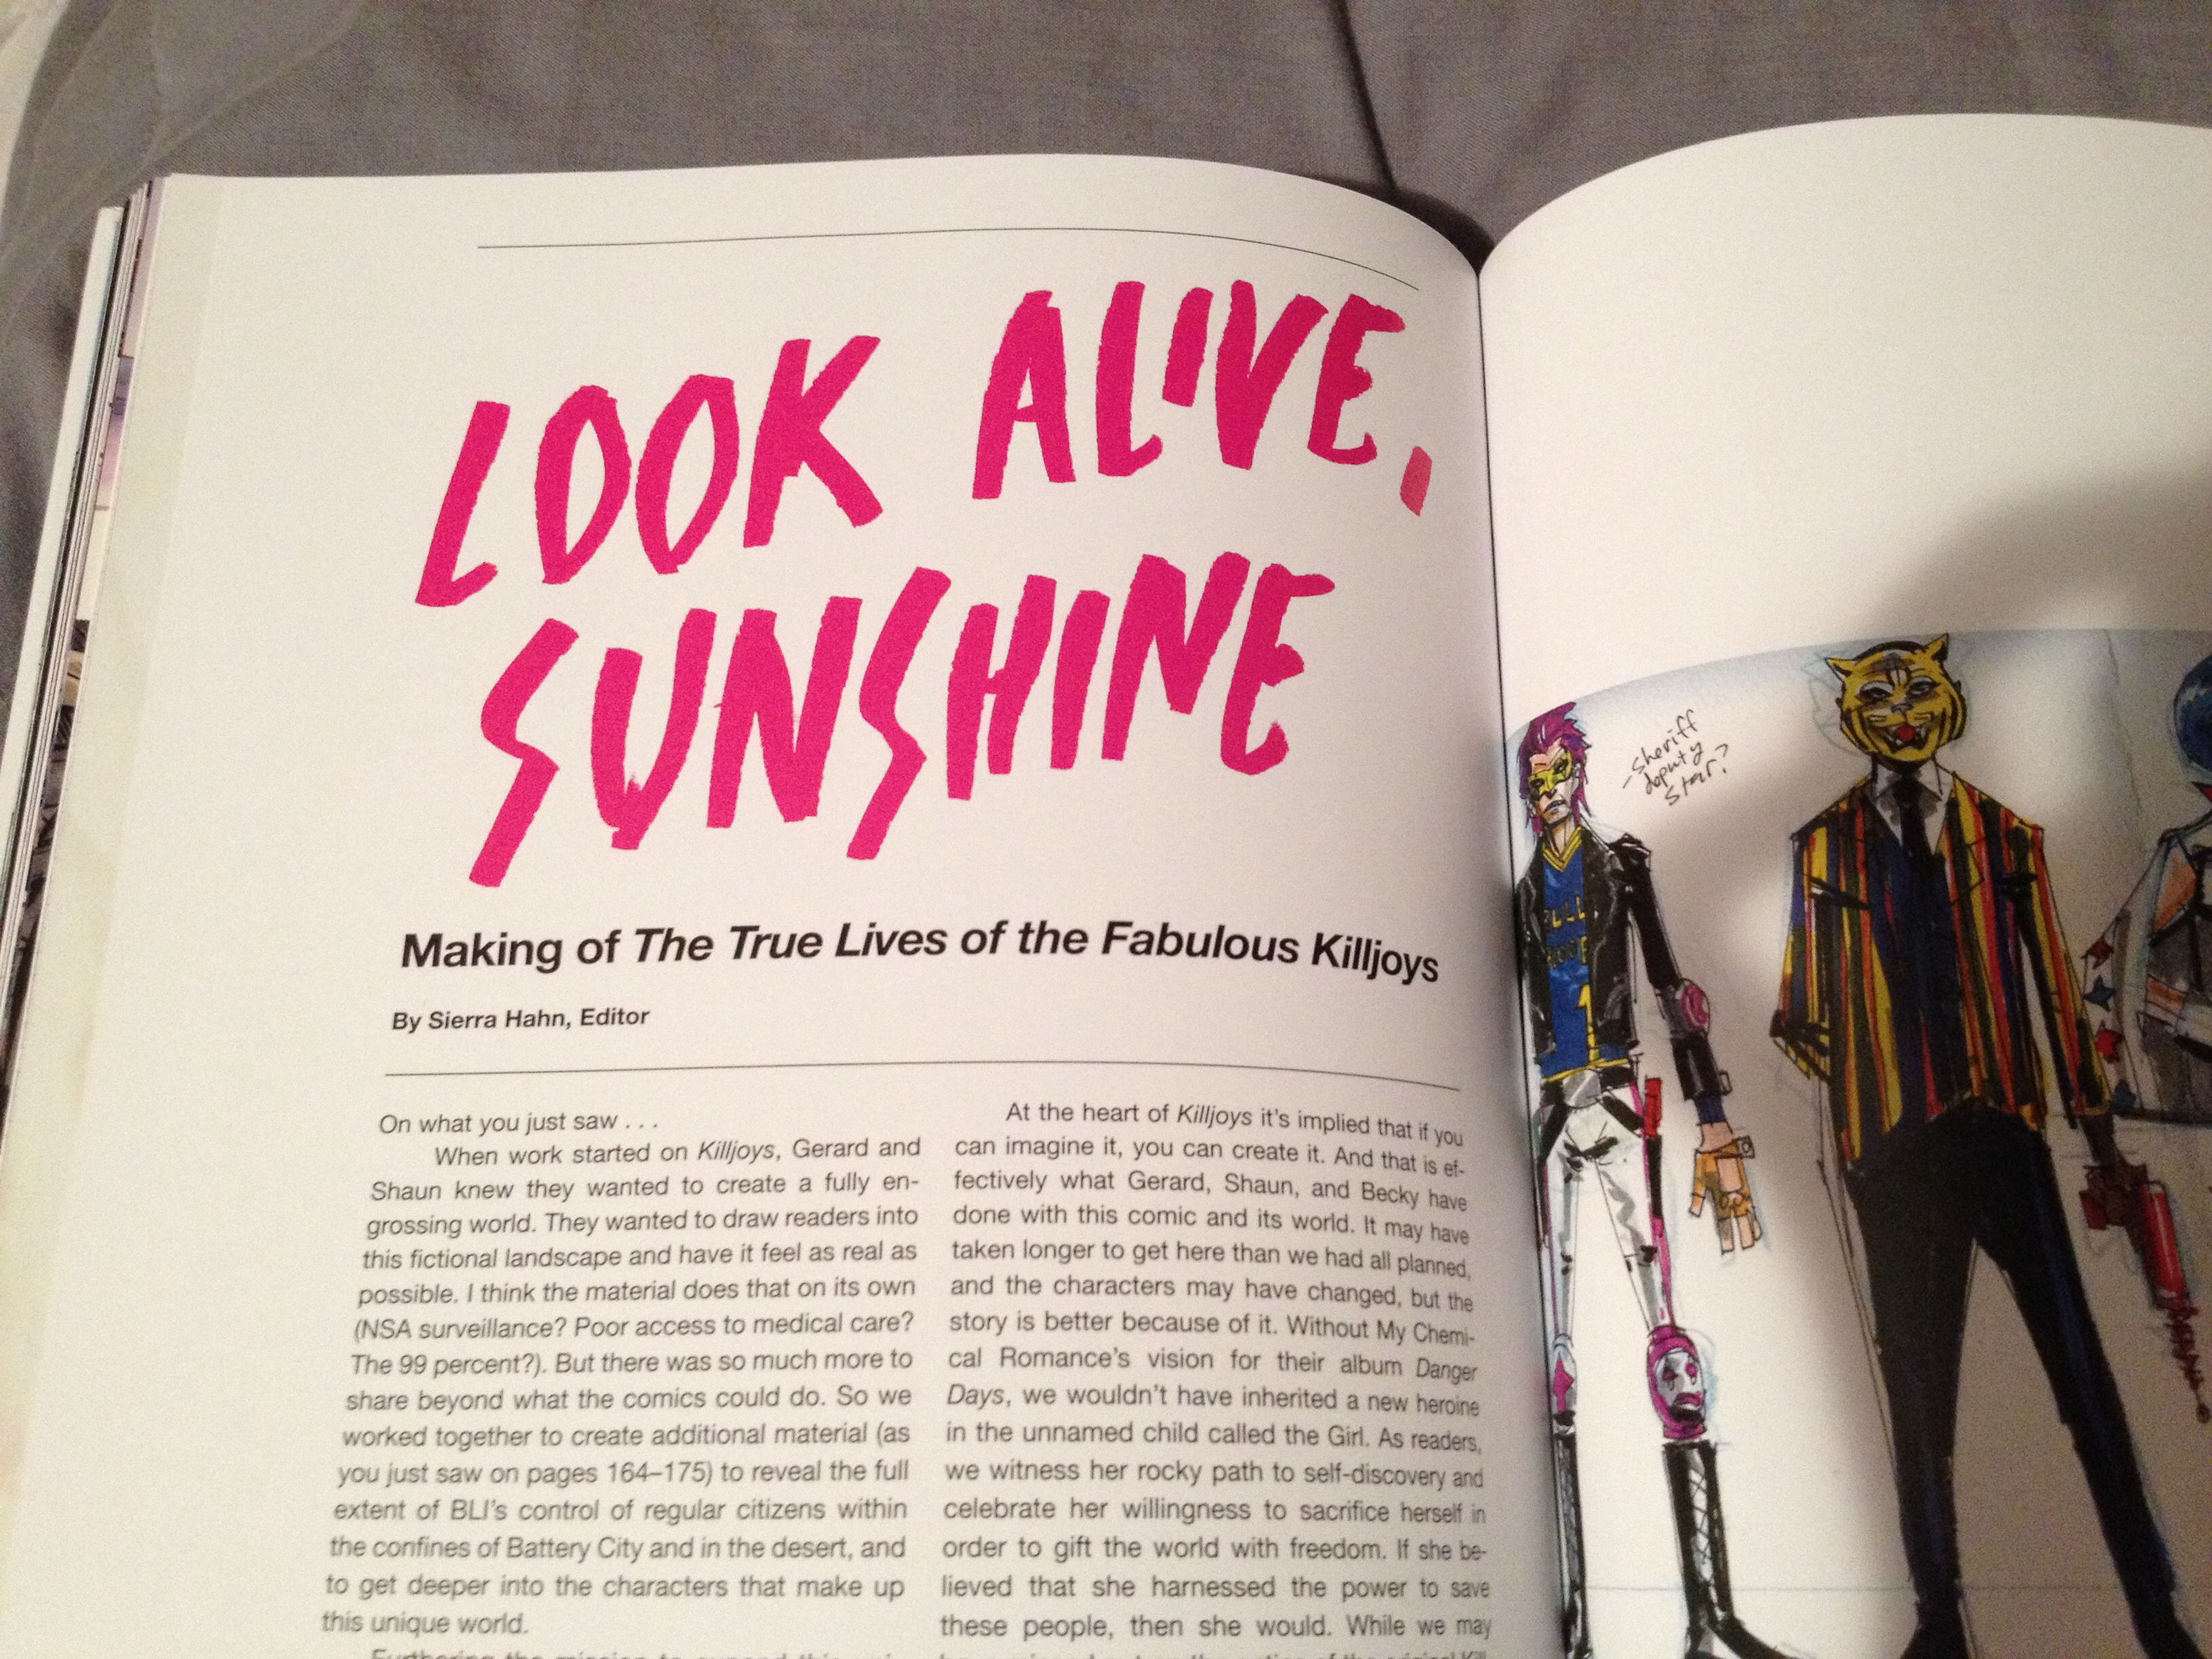 The True Lives Of The Fabulous Killjoys - Limited Edition Hardcover (boxed only 2,500 copies)